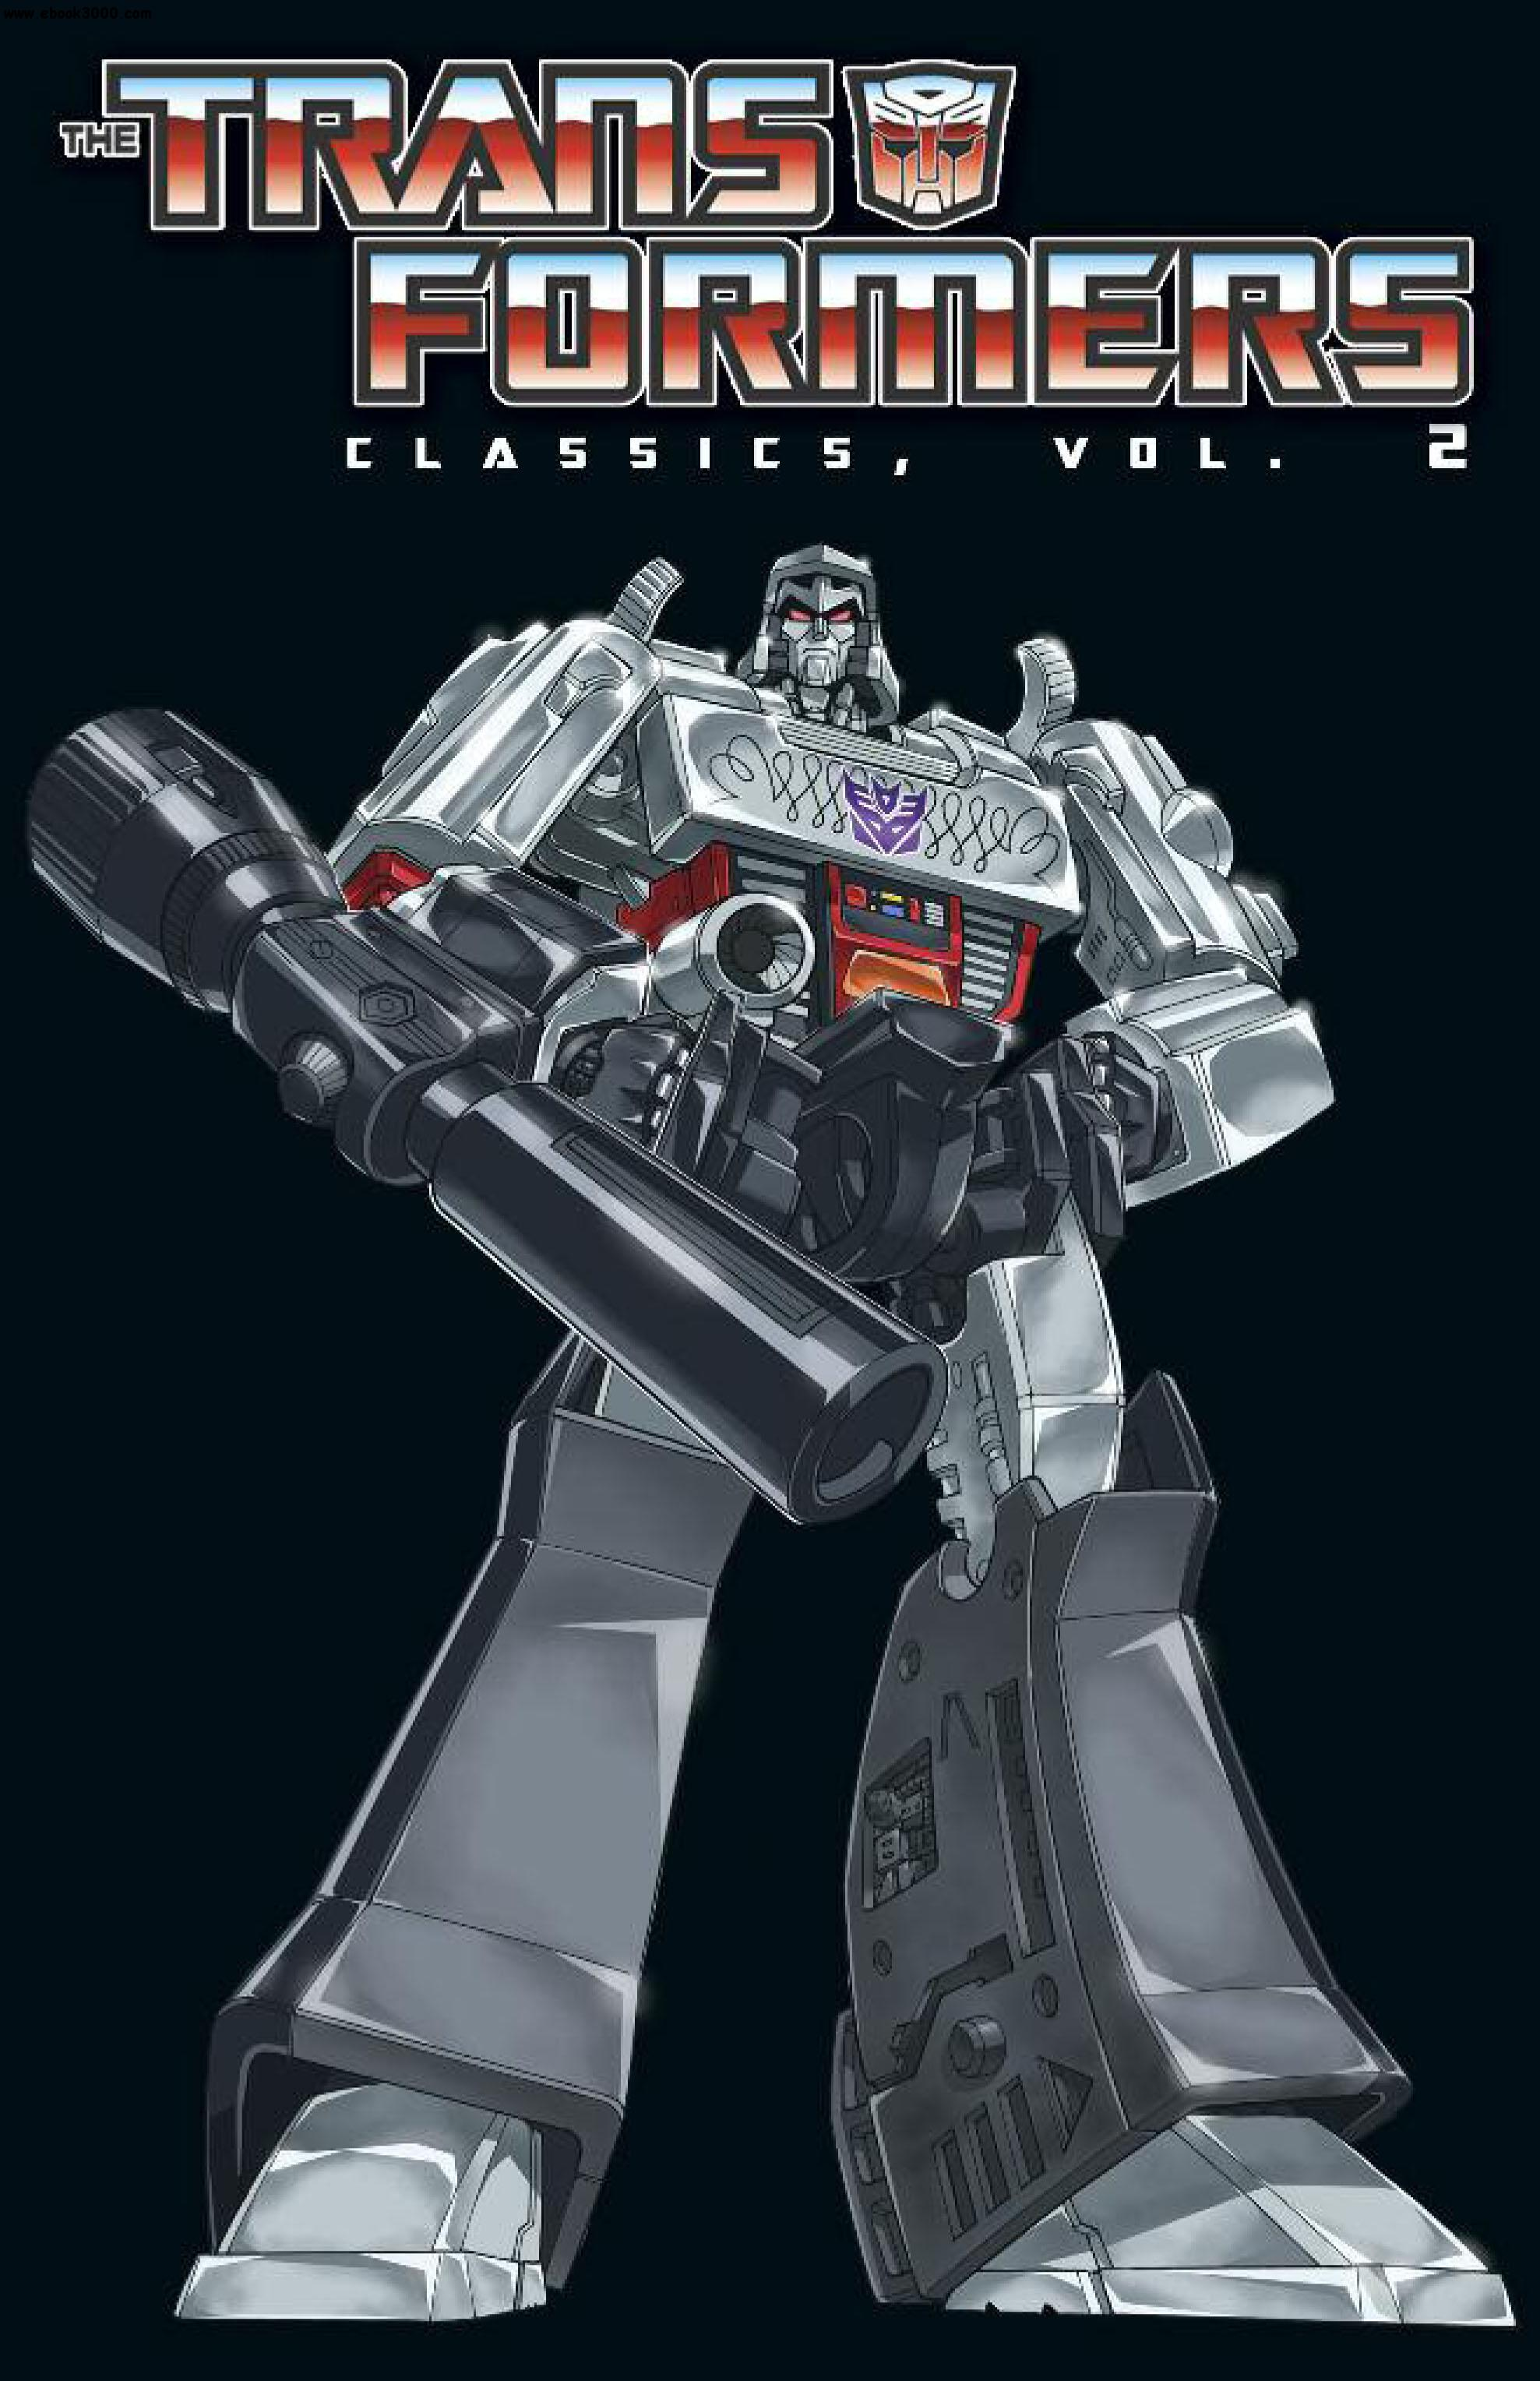 The Transformers - Classics Vol. 2 (2011) free download